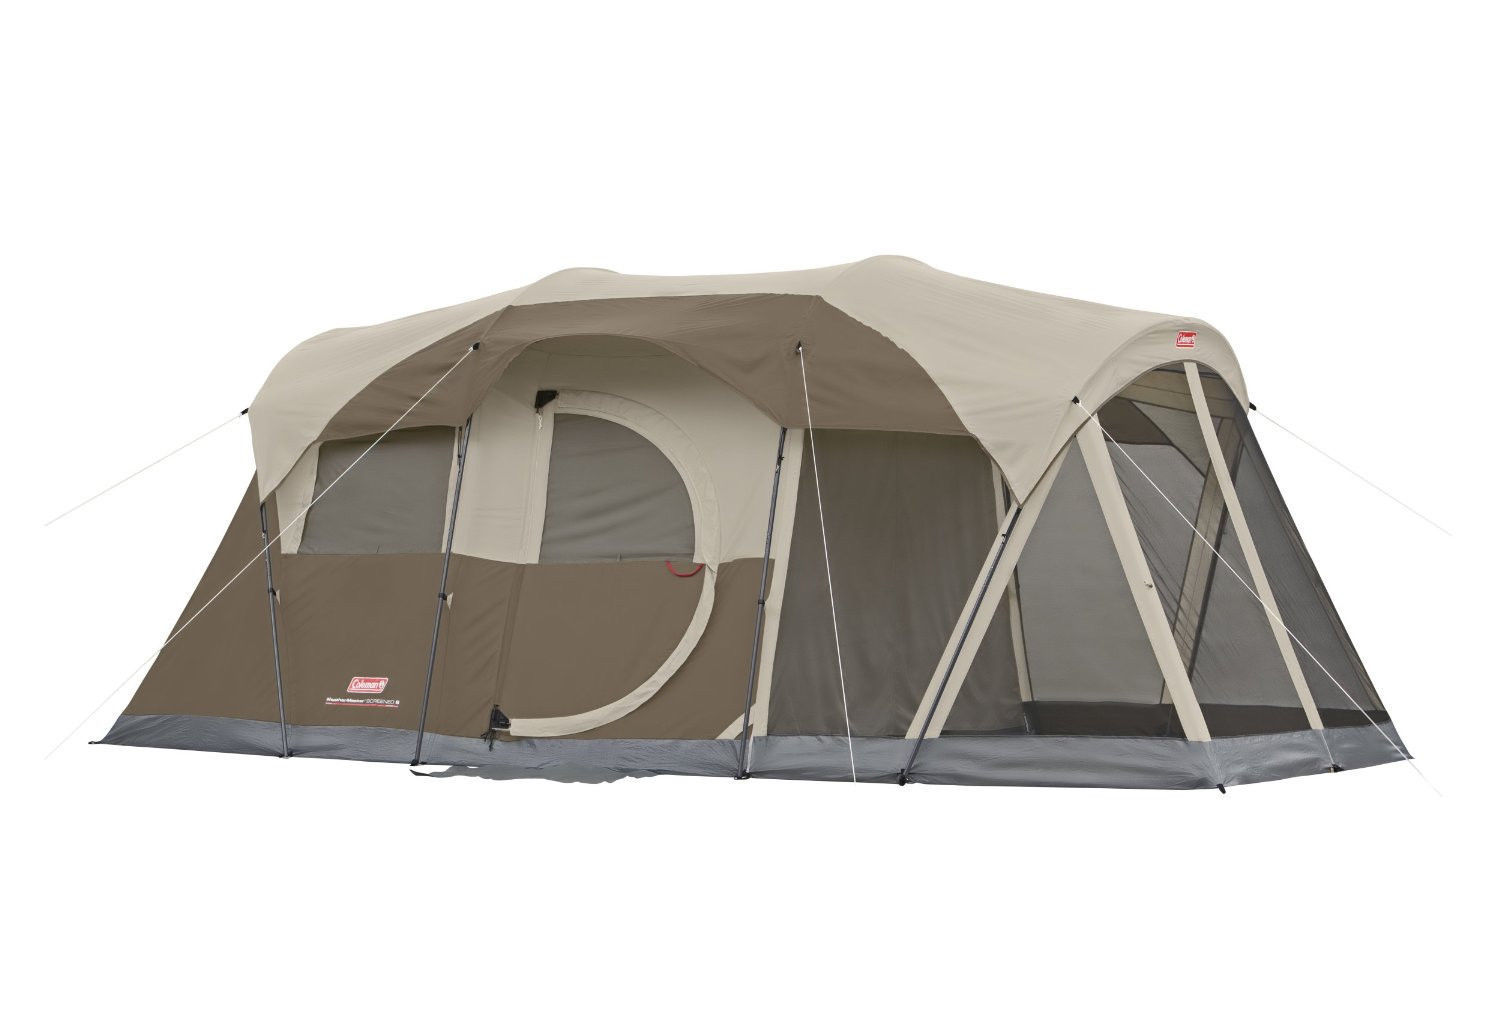 Coleman 12 10 Shelter With Screen Walls Manual : Tent coleman weathermaster screened person camping